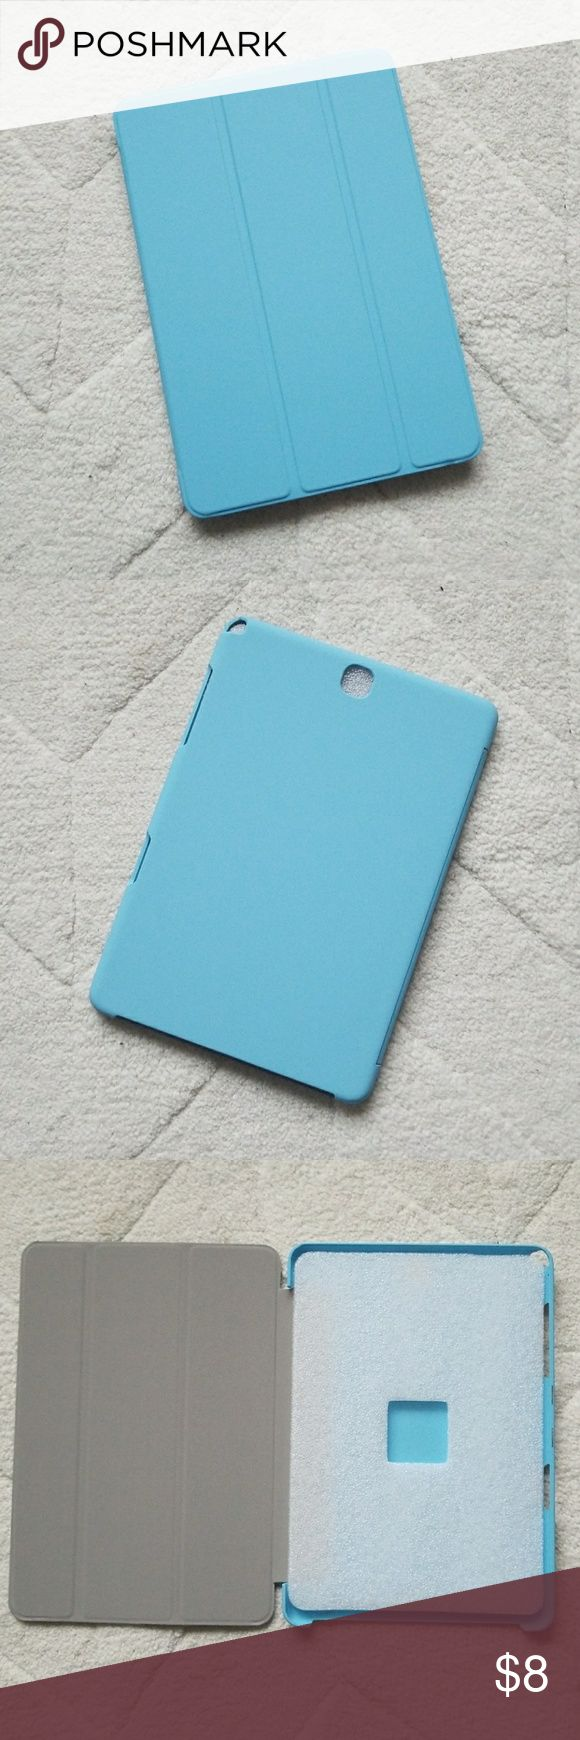 Moko Case for Samsung Tab A+ 9.7 Moko 3z case for Samsung Galaxy Tab A+ 9.7 inch in light blue. New & never used! other Other